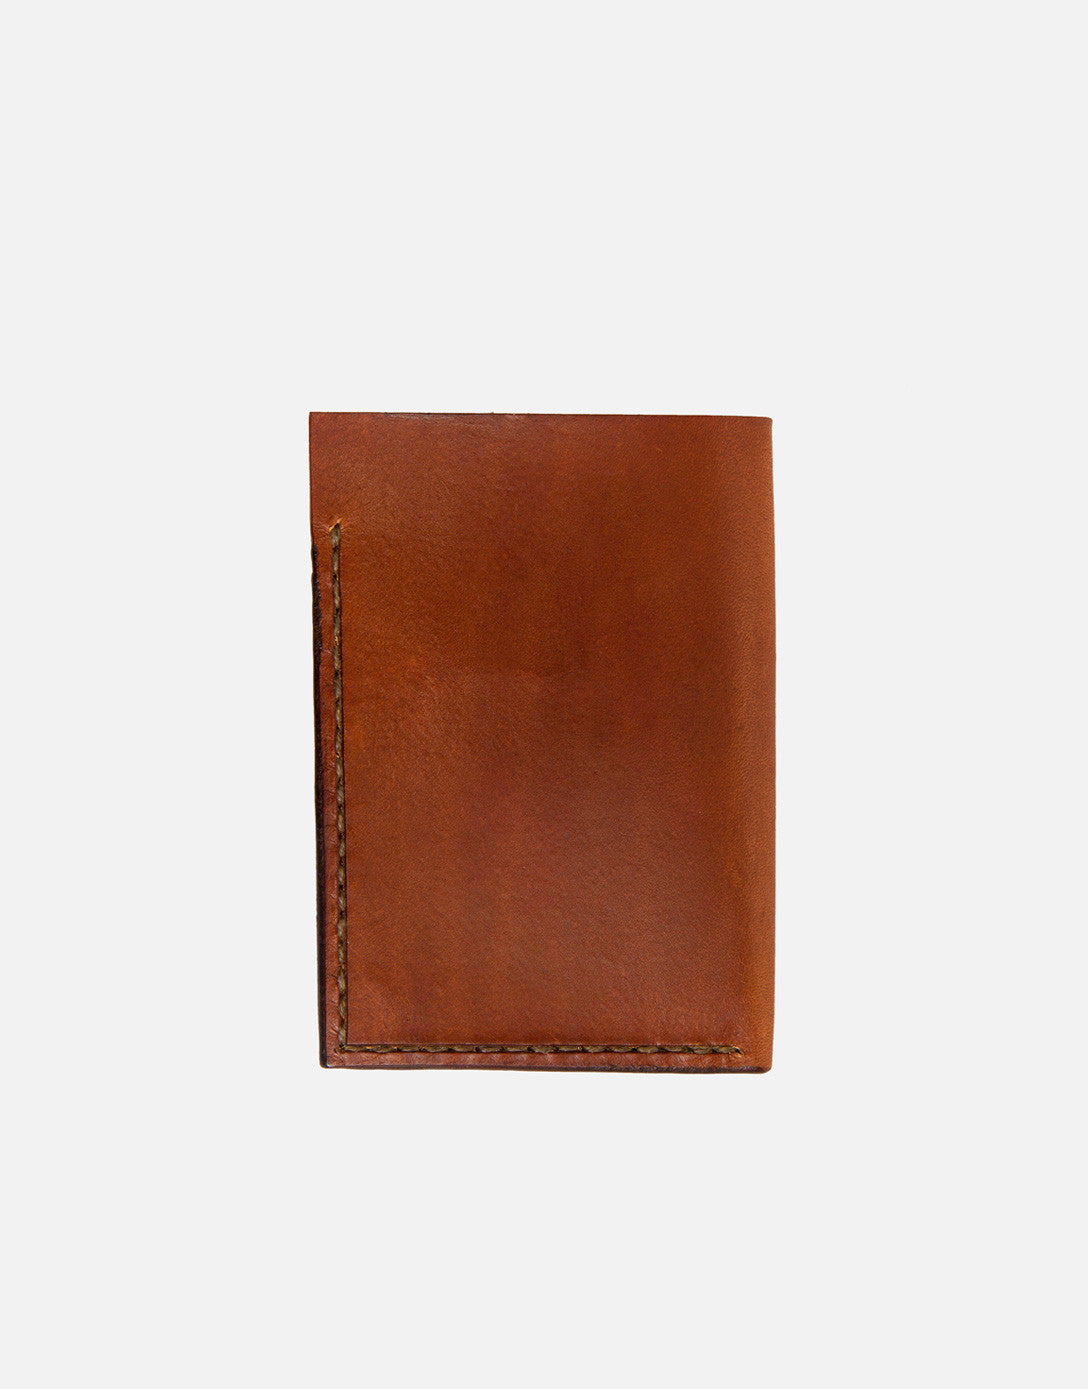 Ada Blackjack Brown Card Holder